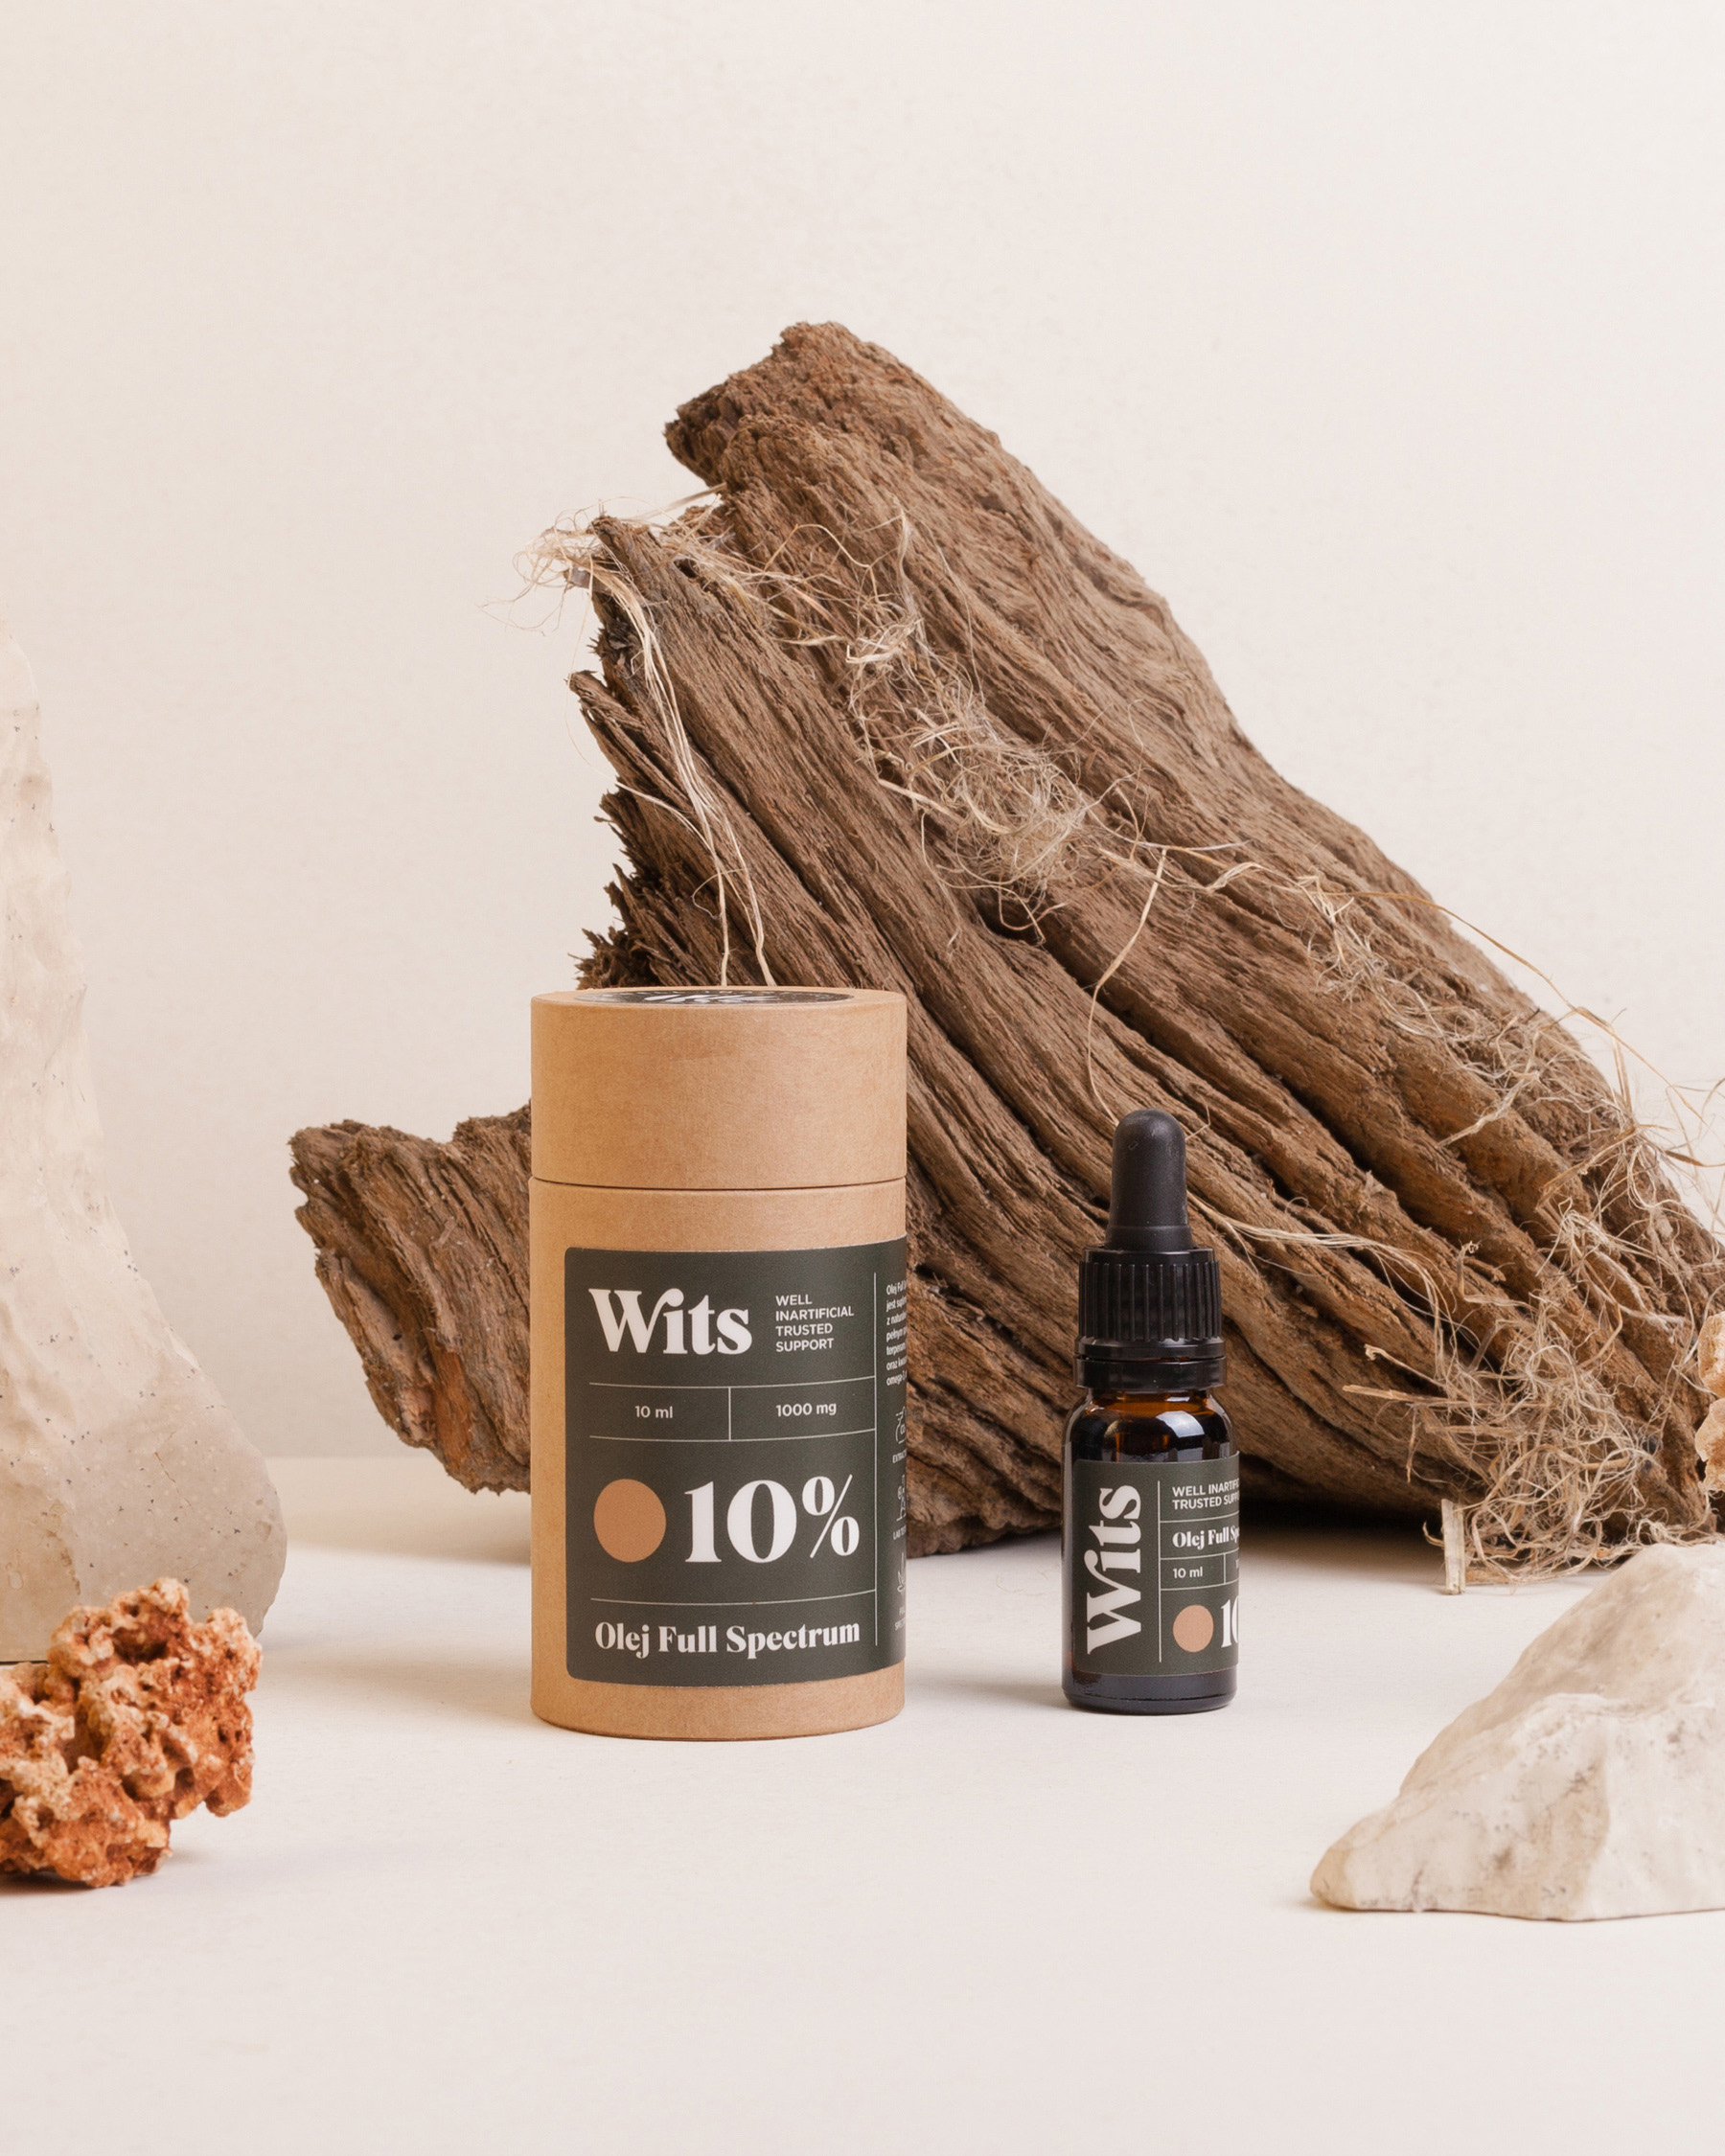 Unifikat Studio Branding and Packaging Design for CBD Brand Wits